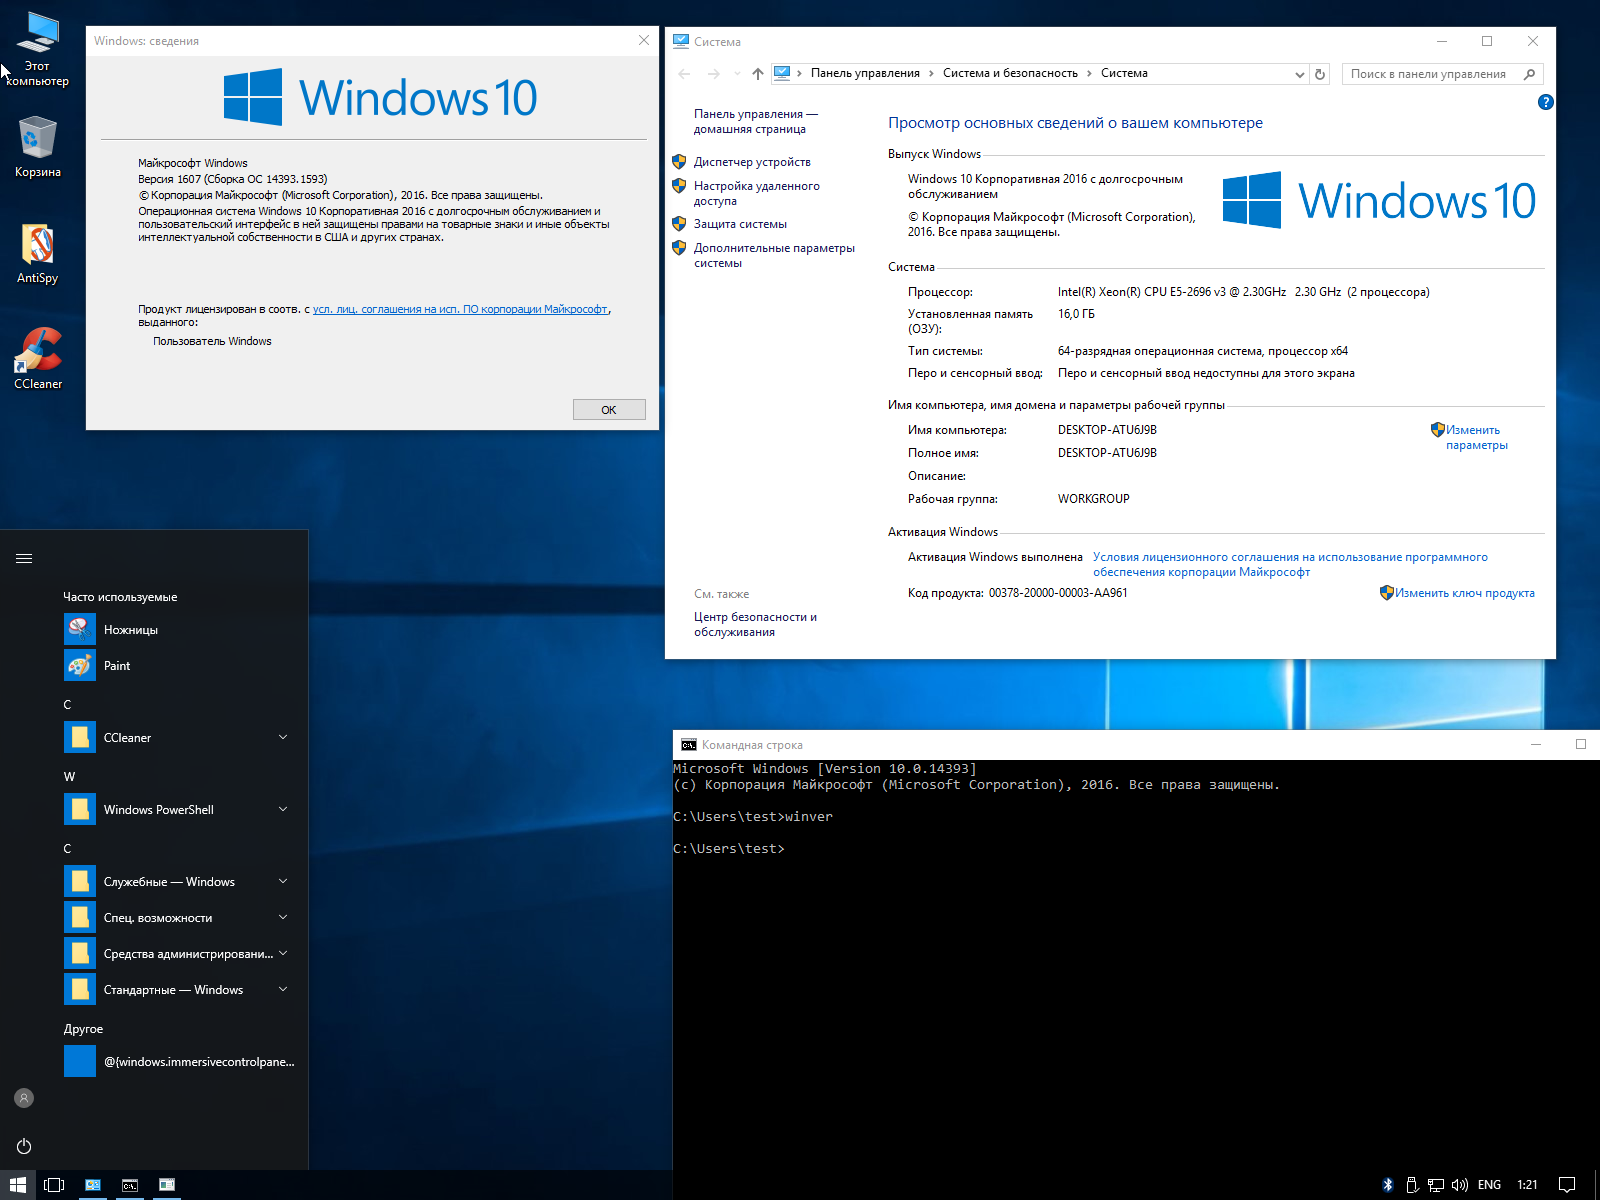 Windows 10 ltsb lite 2017 | Convince Me Not to Use Windows 10 LTSB